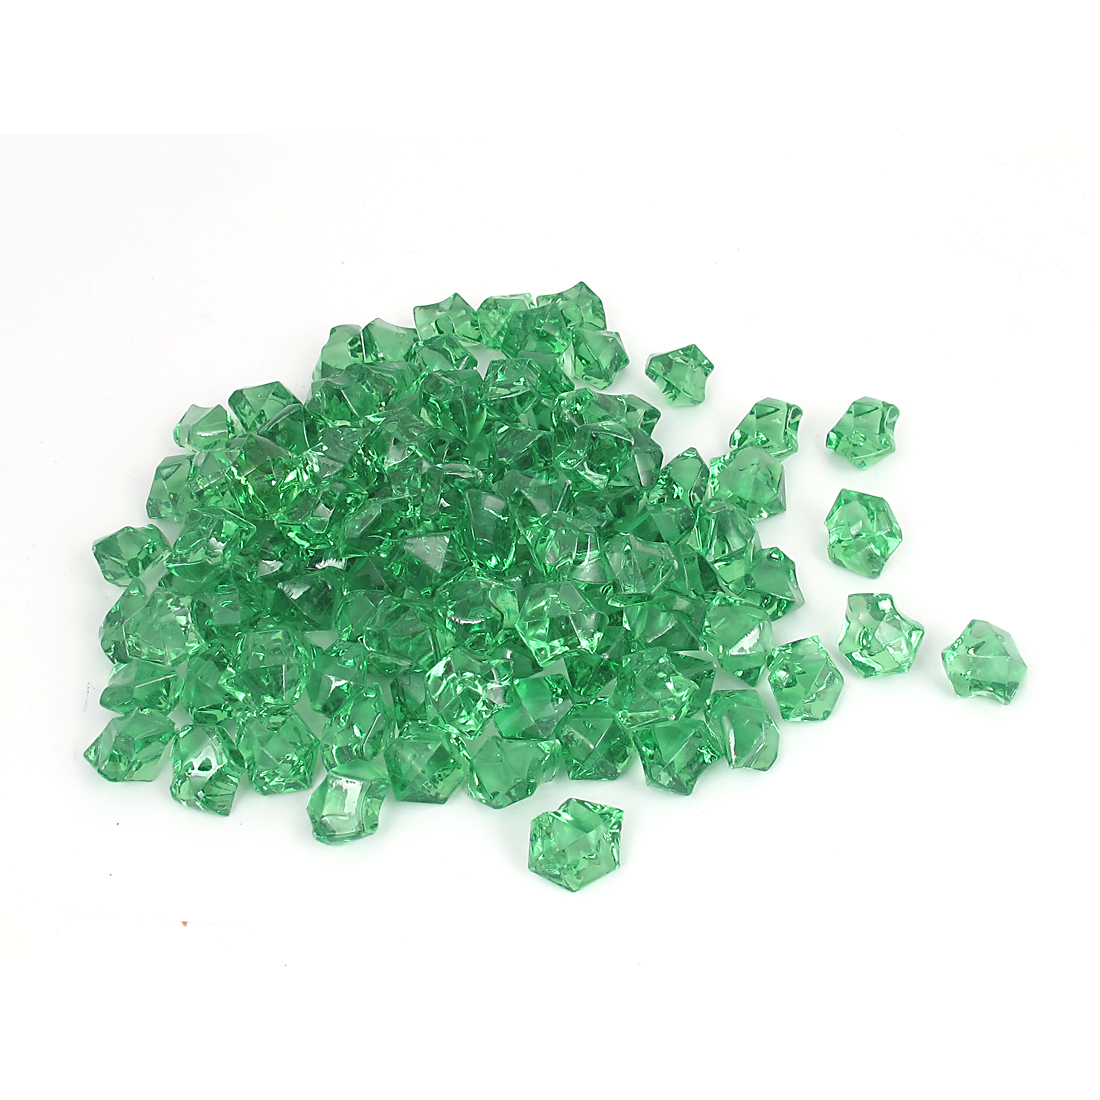 111 Pcs 2.5cm Length Green Plastic Atificial Polygon Decoration Aquarium Plastic Crystal Stones for Fish Tank